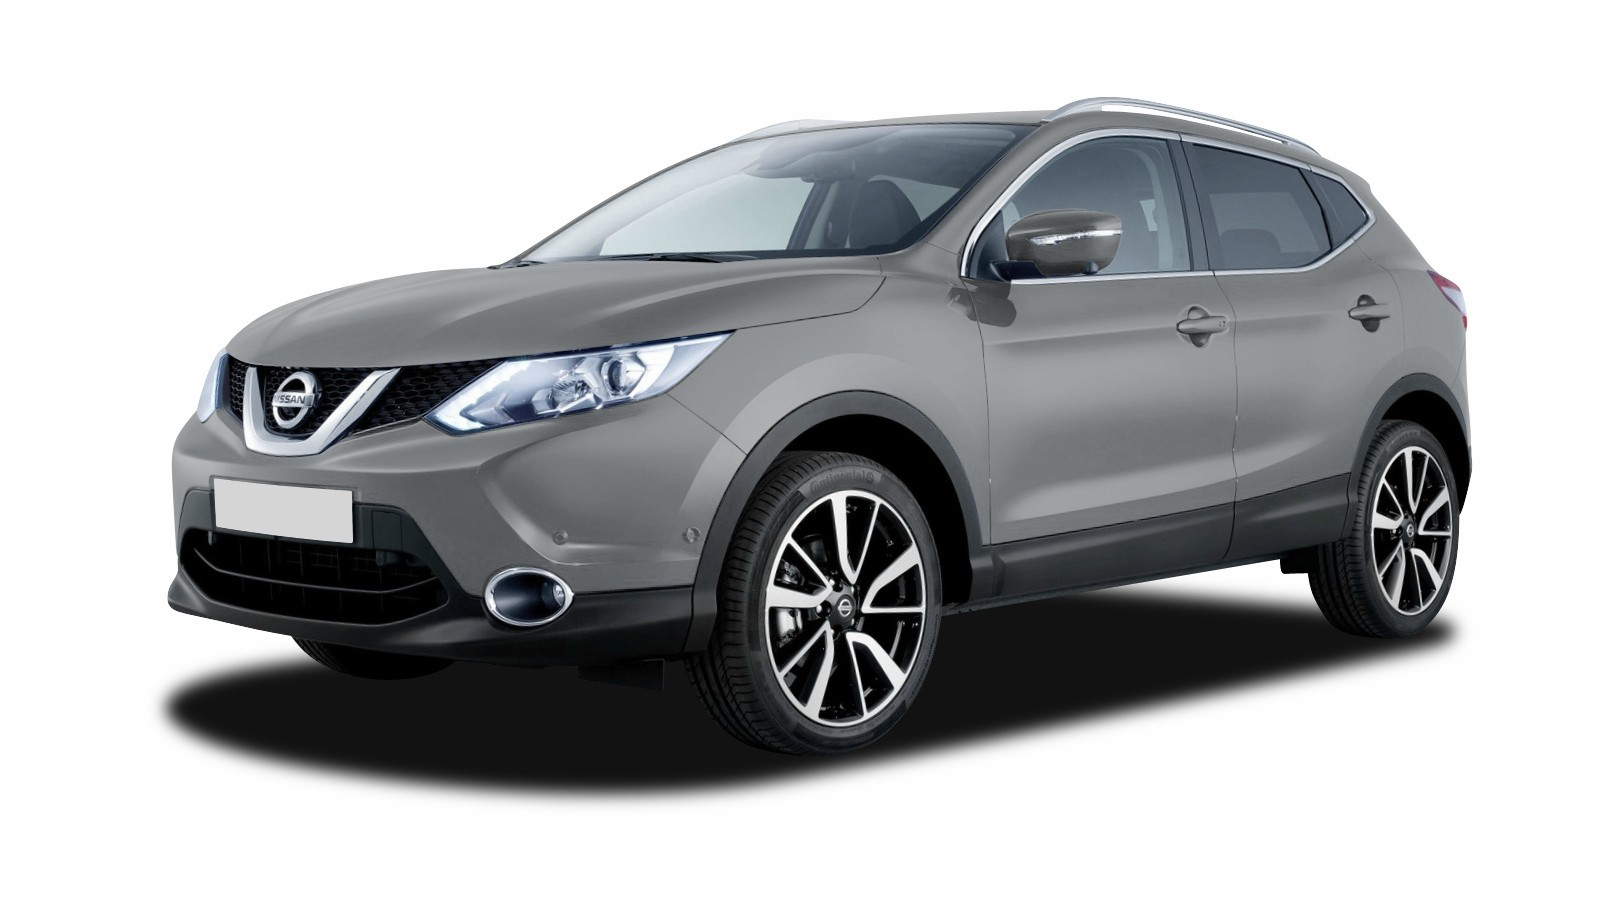 nissan qashqai nouveau 4x2 et suv 5 portes diesel 1 6 dci 130 auto bo te automatique. Black Bedroom Furniture Sets. Home Design Ideas